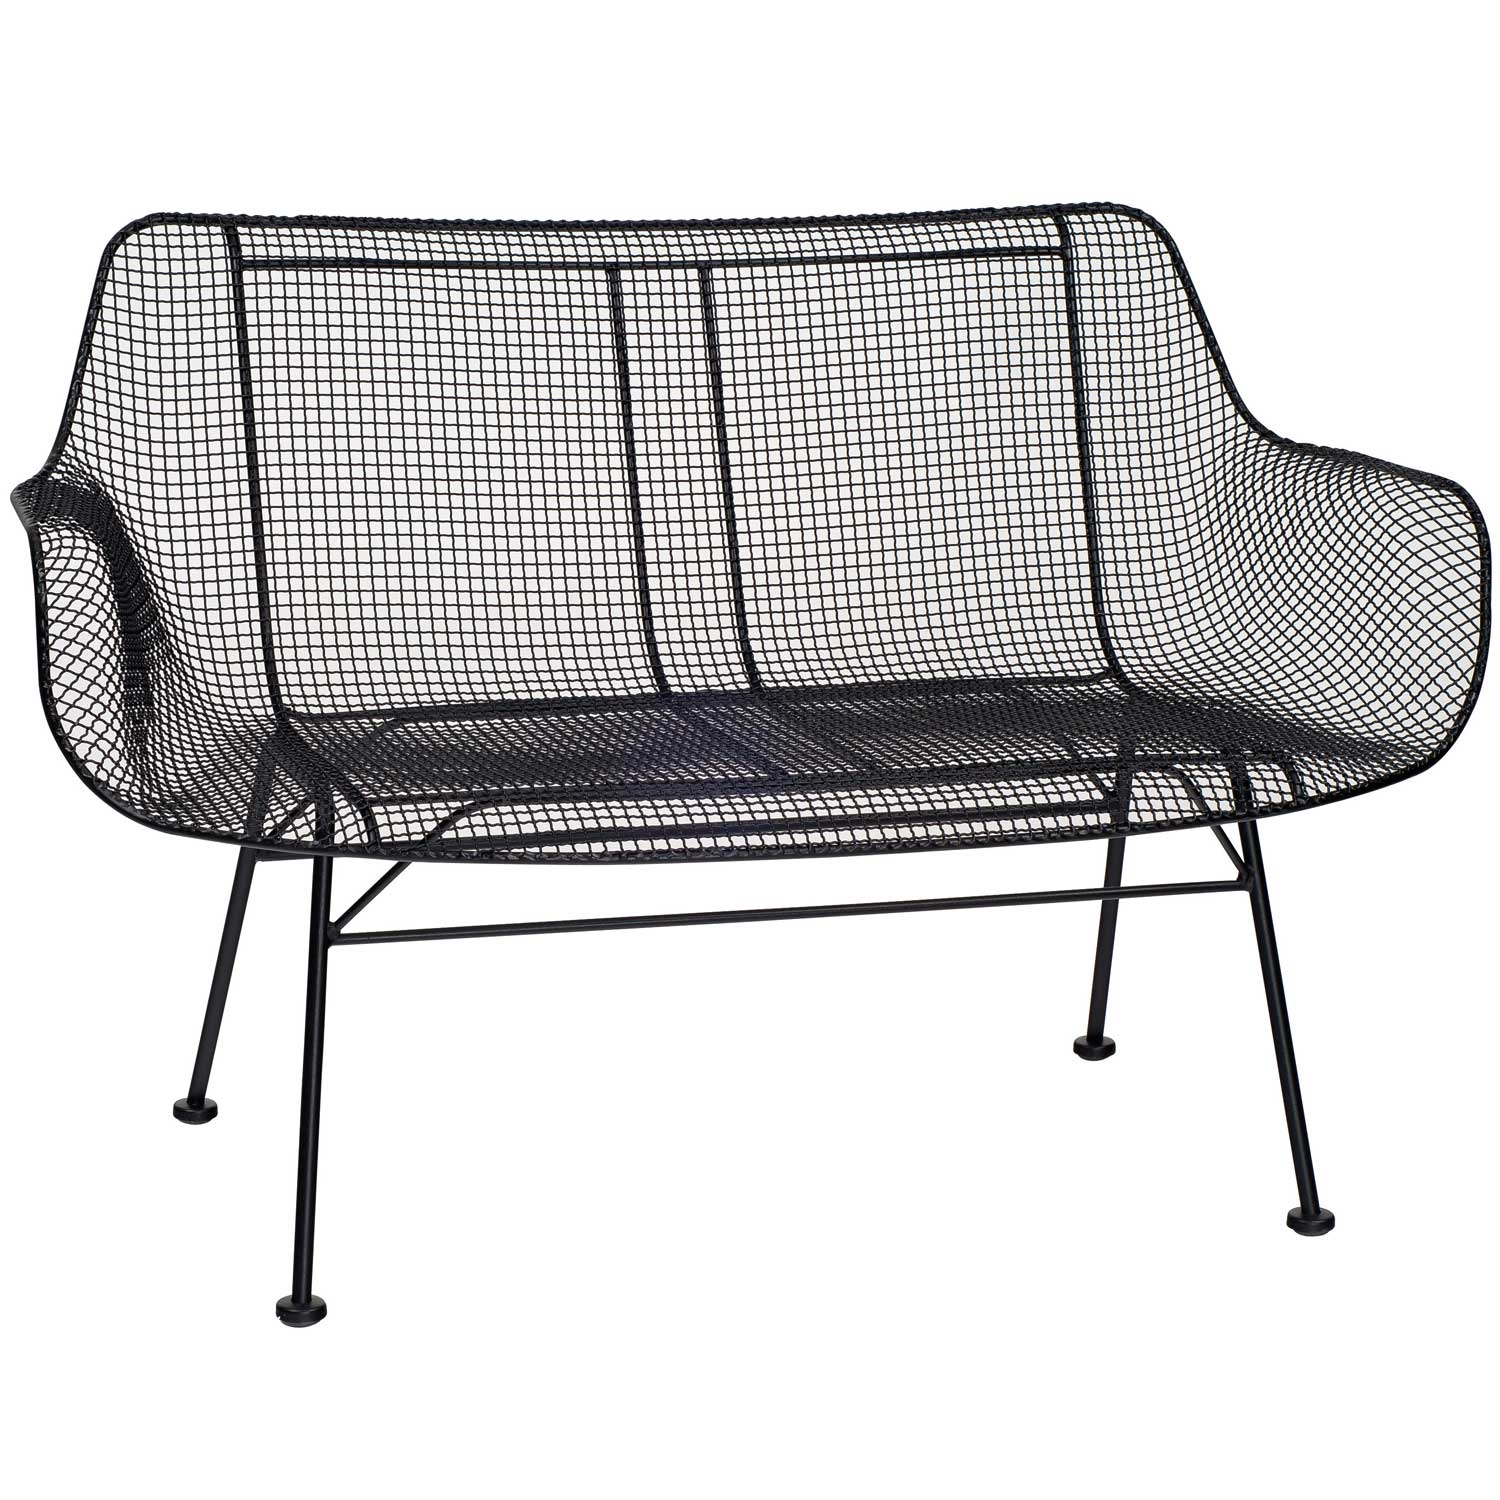 Outdoor Bench With Formed Wire Mesh Seat